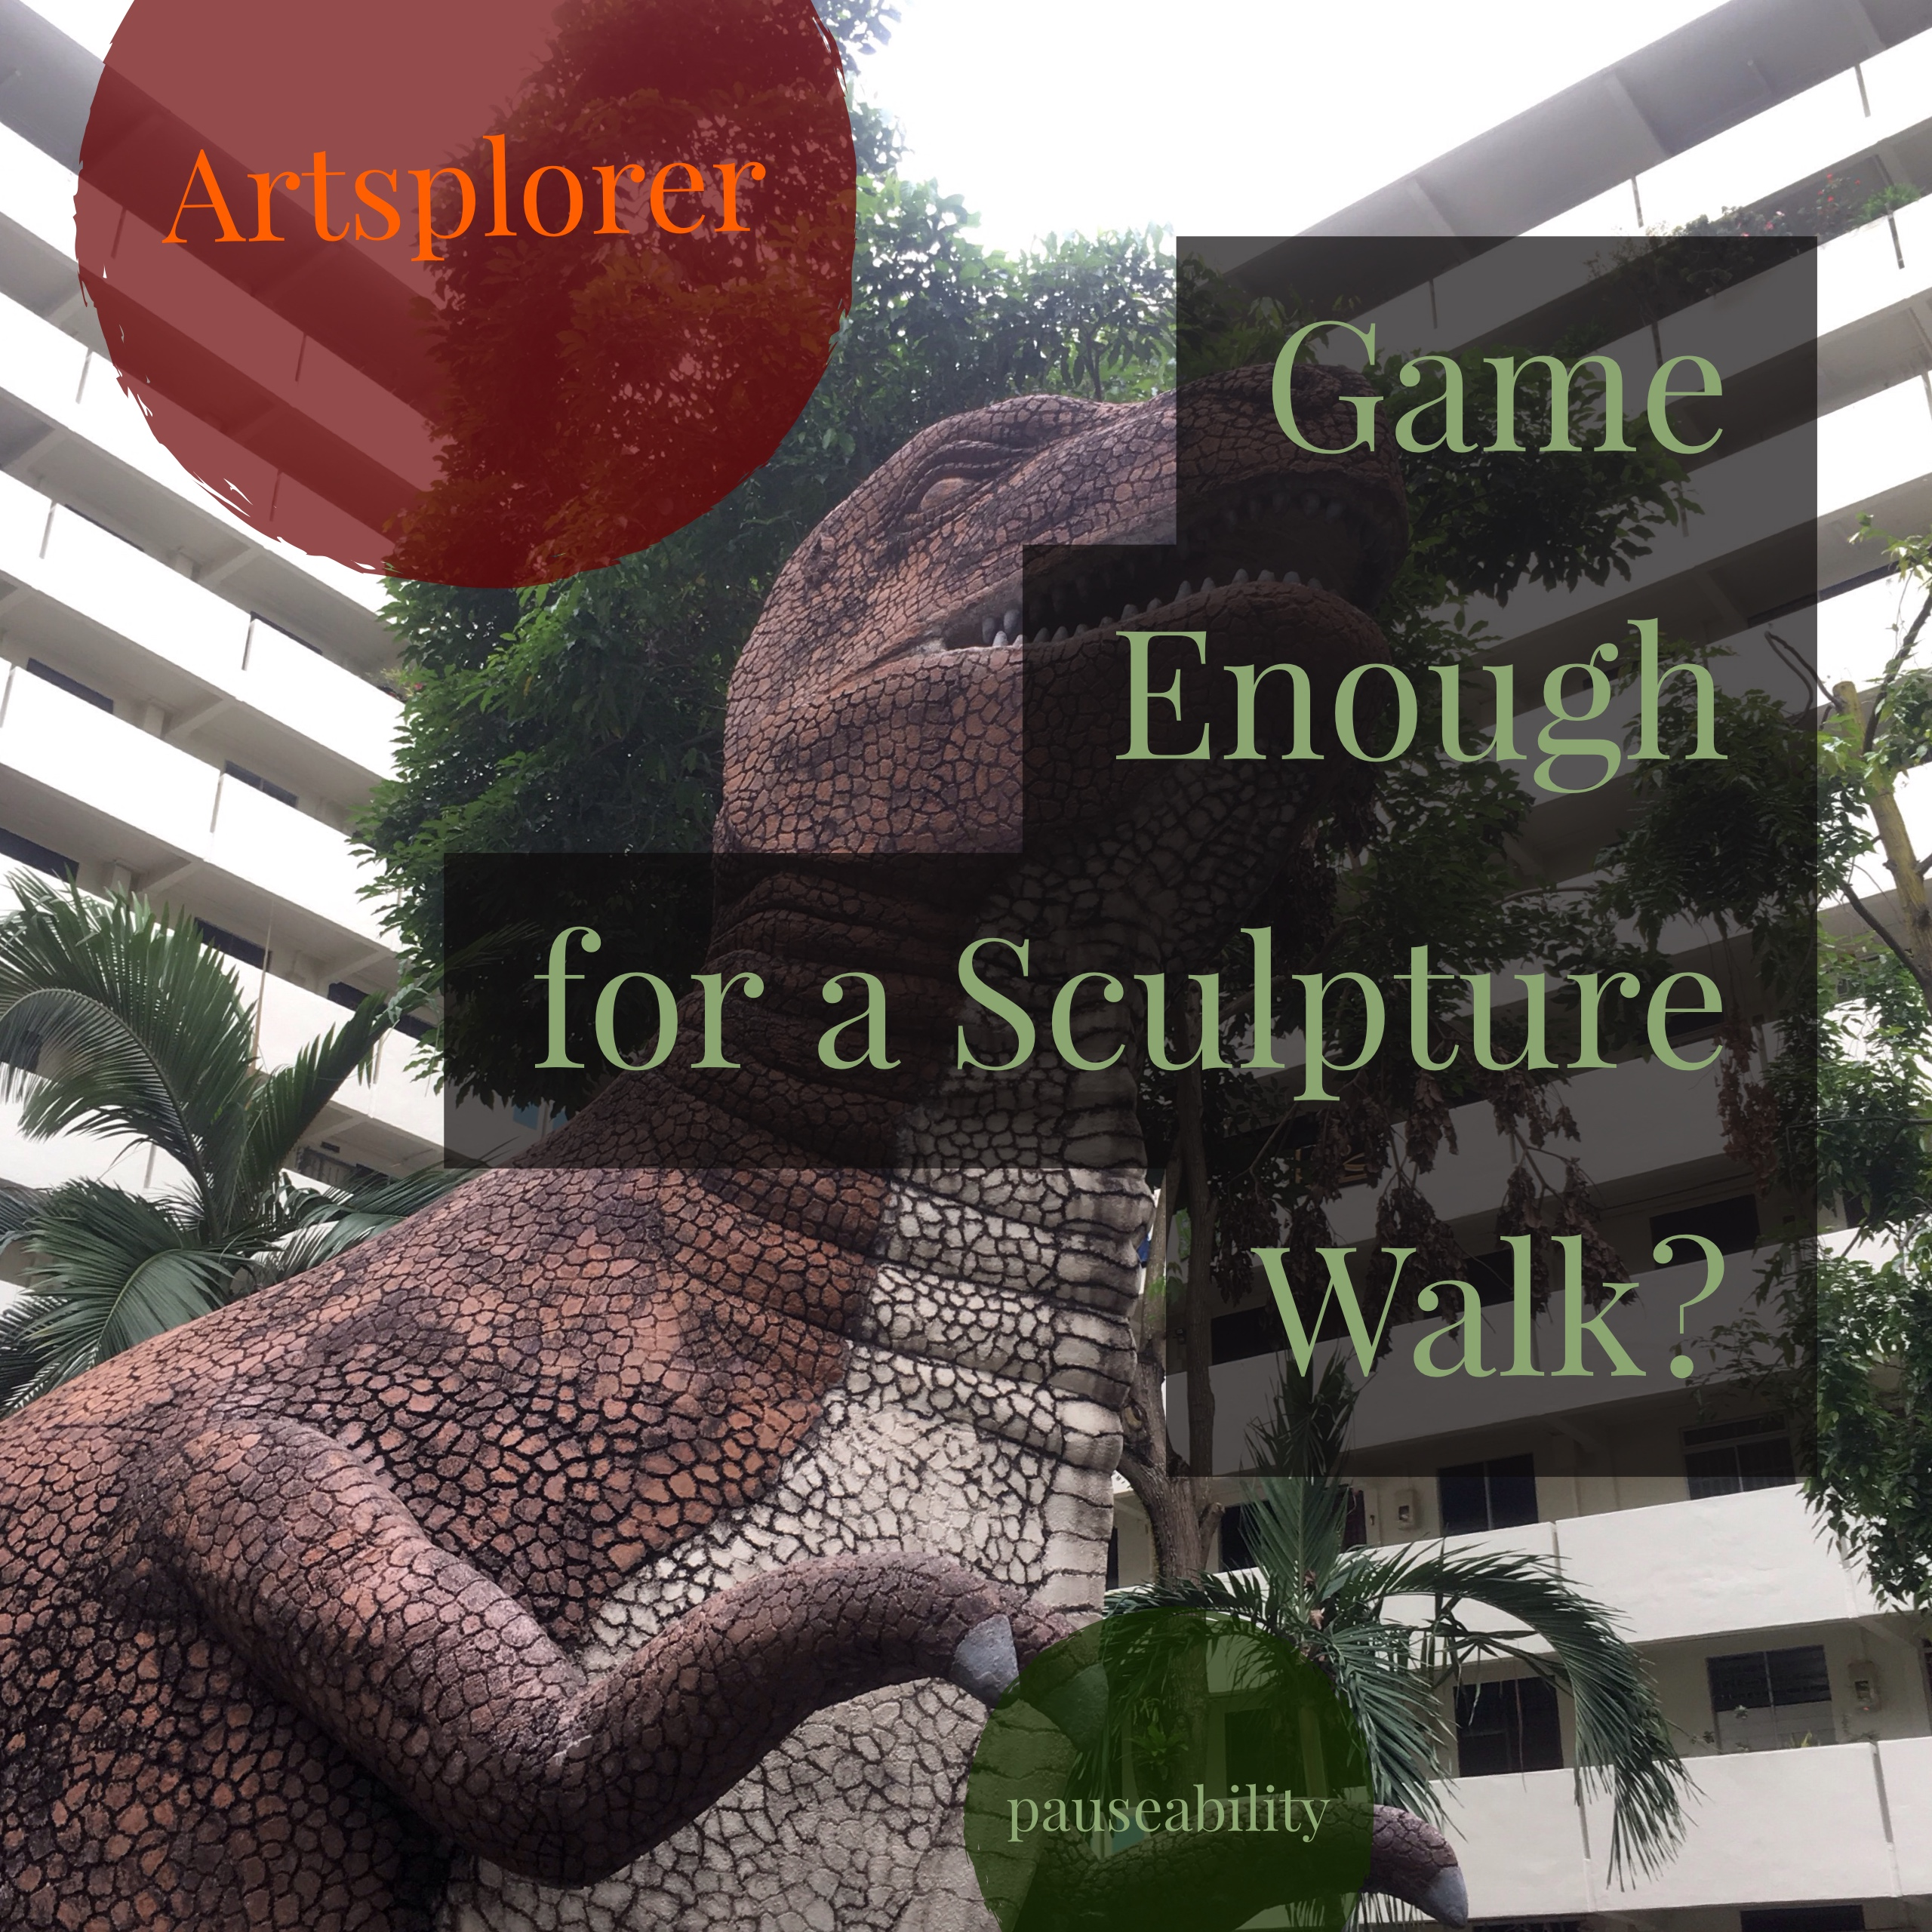 Game for a Sculpture Walk?